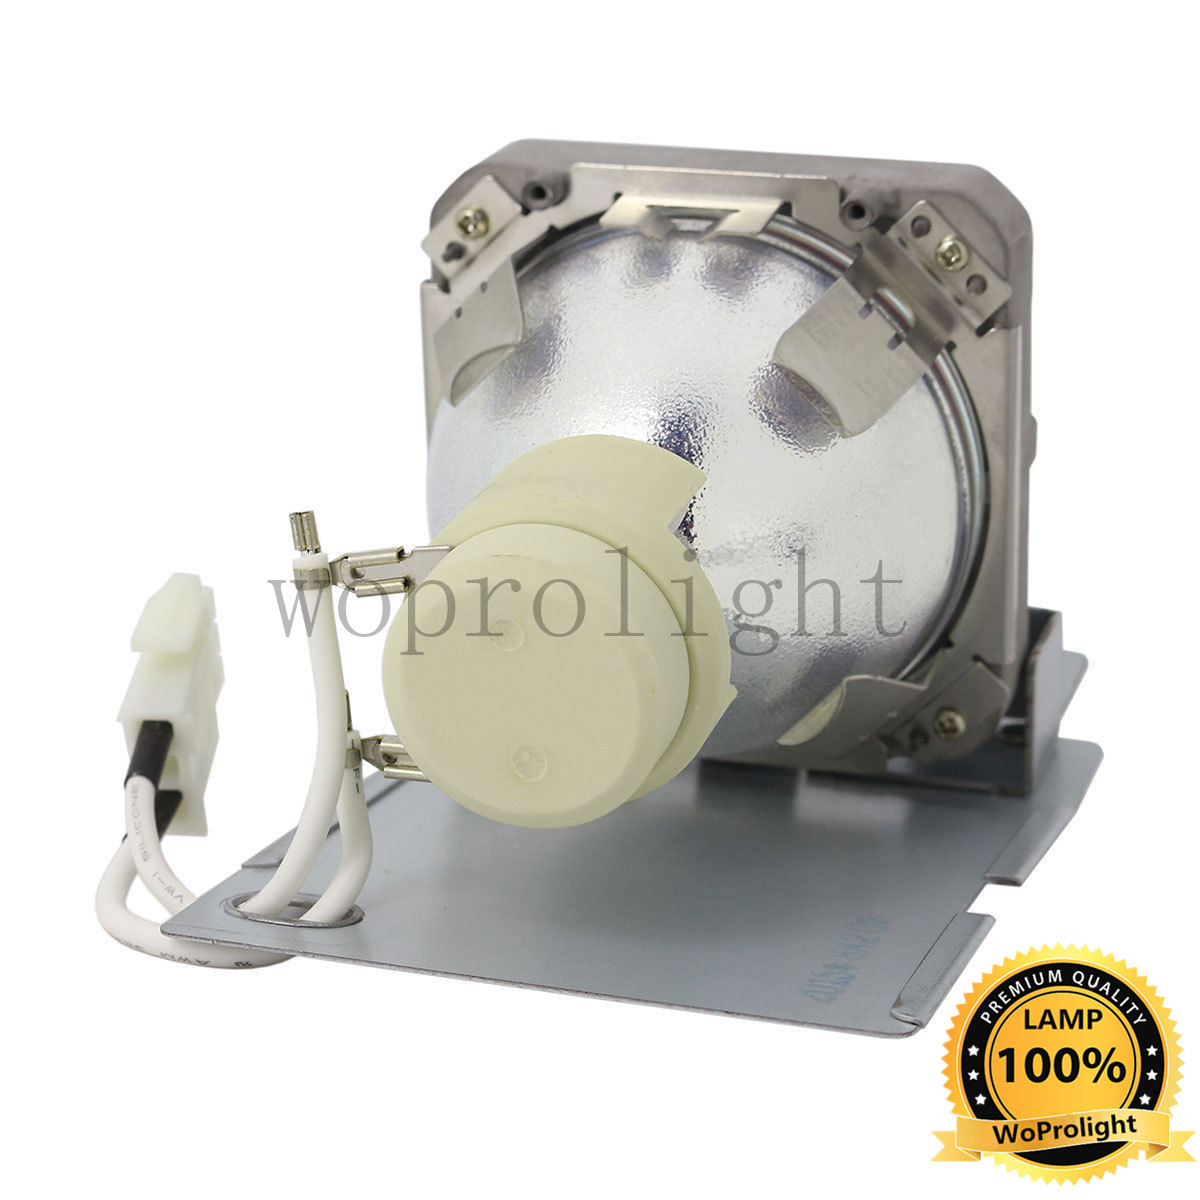 High Quality 5J.JFG05.001 Projector Lamp P-VIP 280W 0.9 E20.9 for BENQ MH750